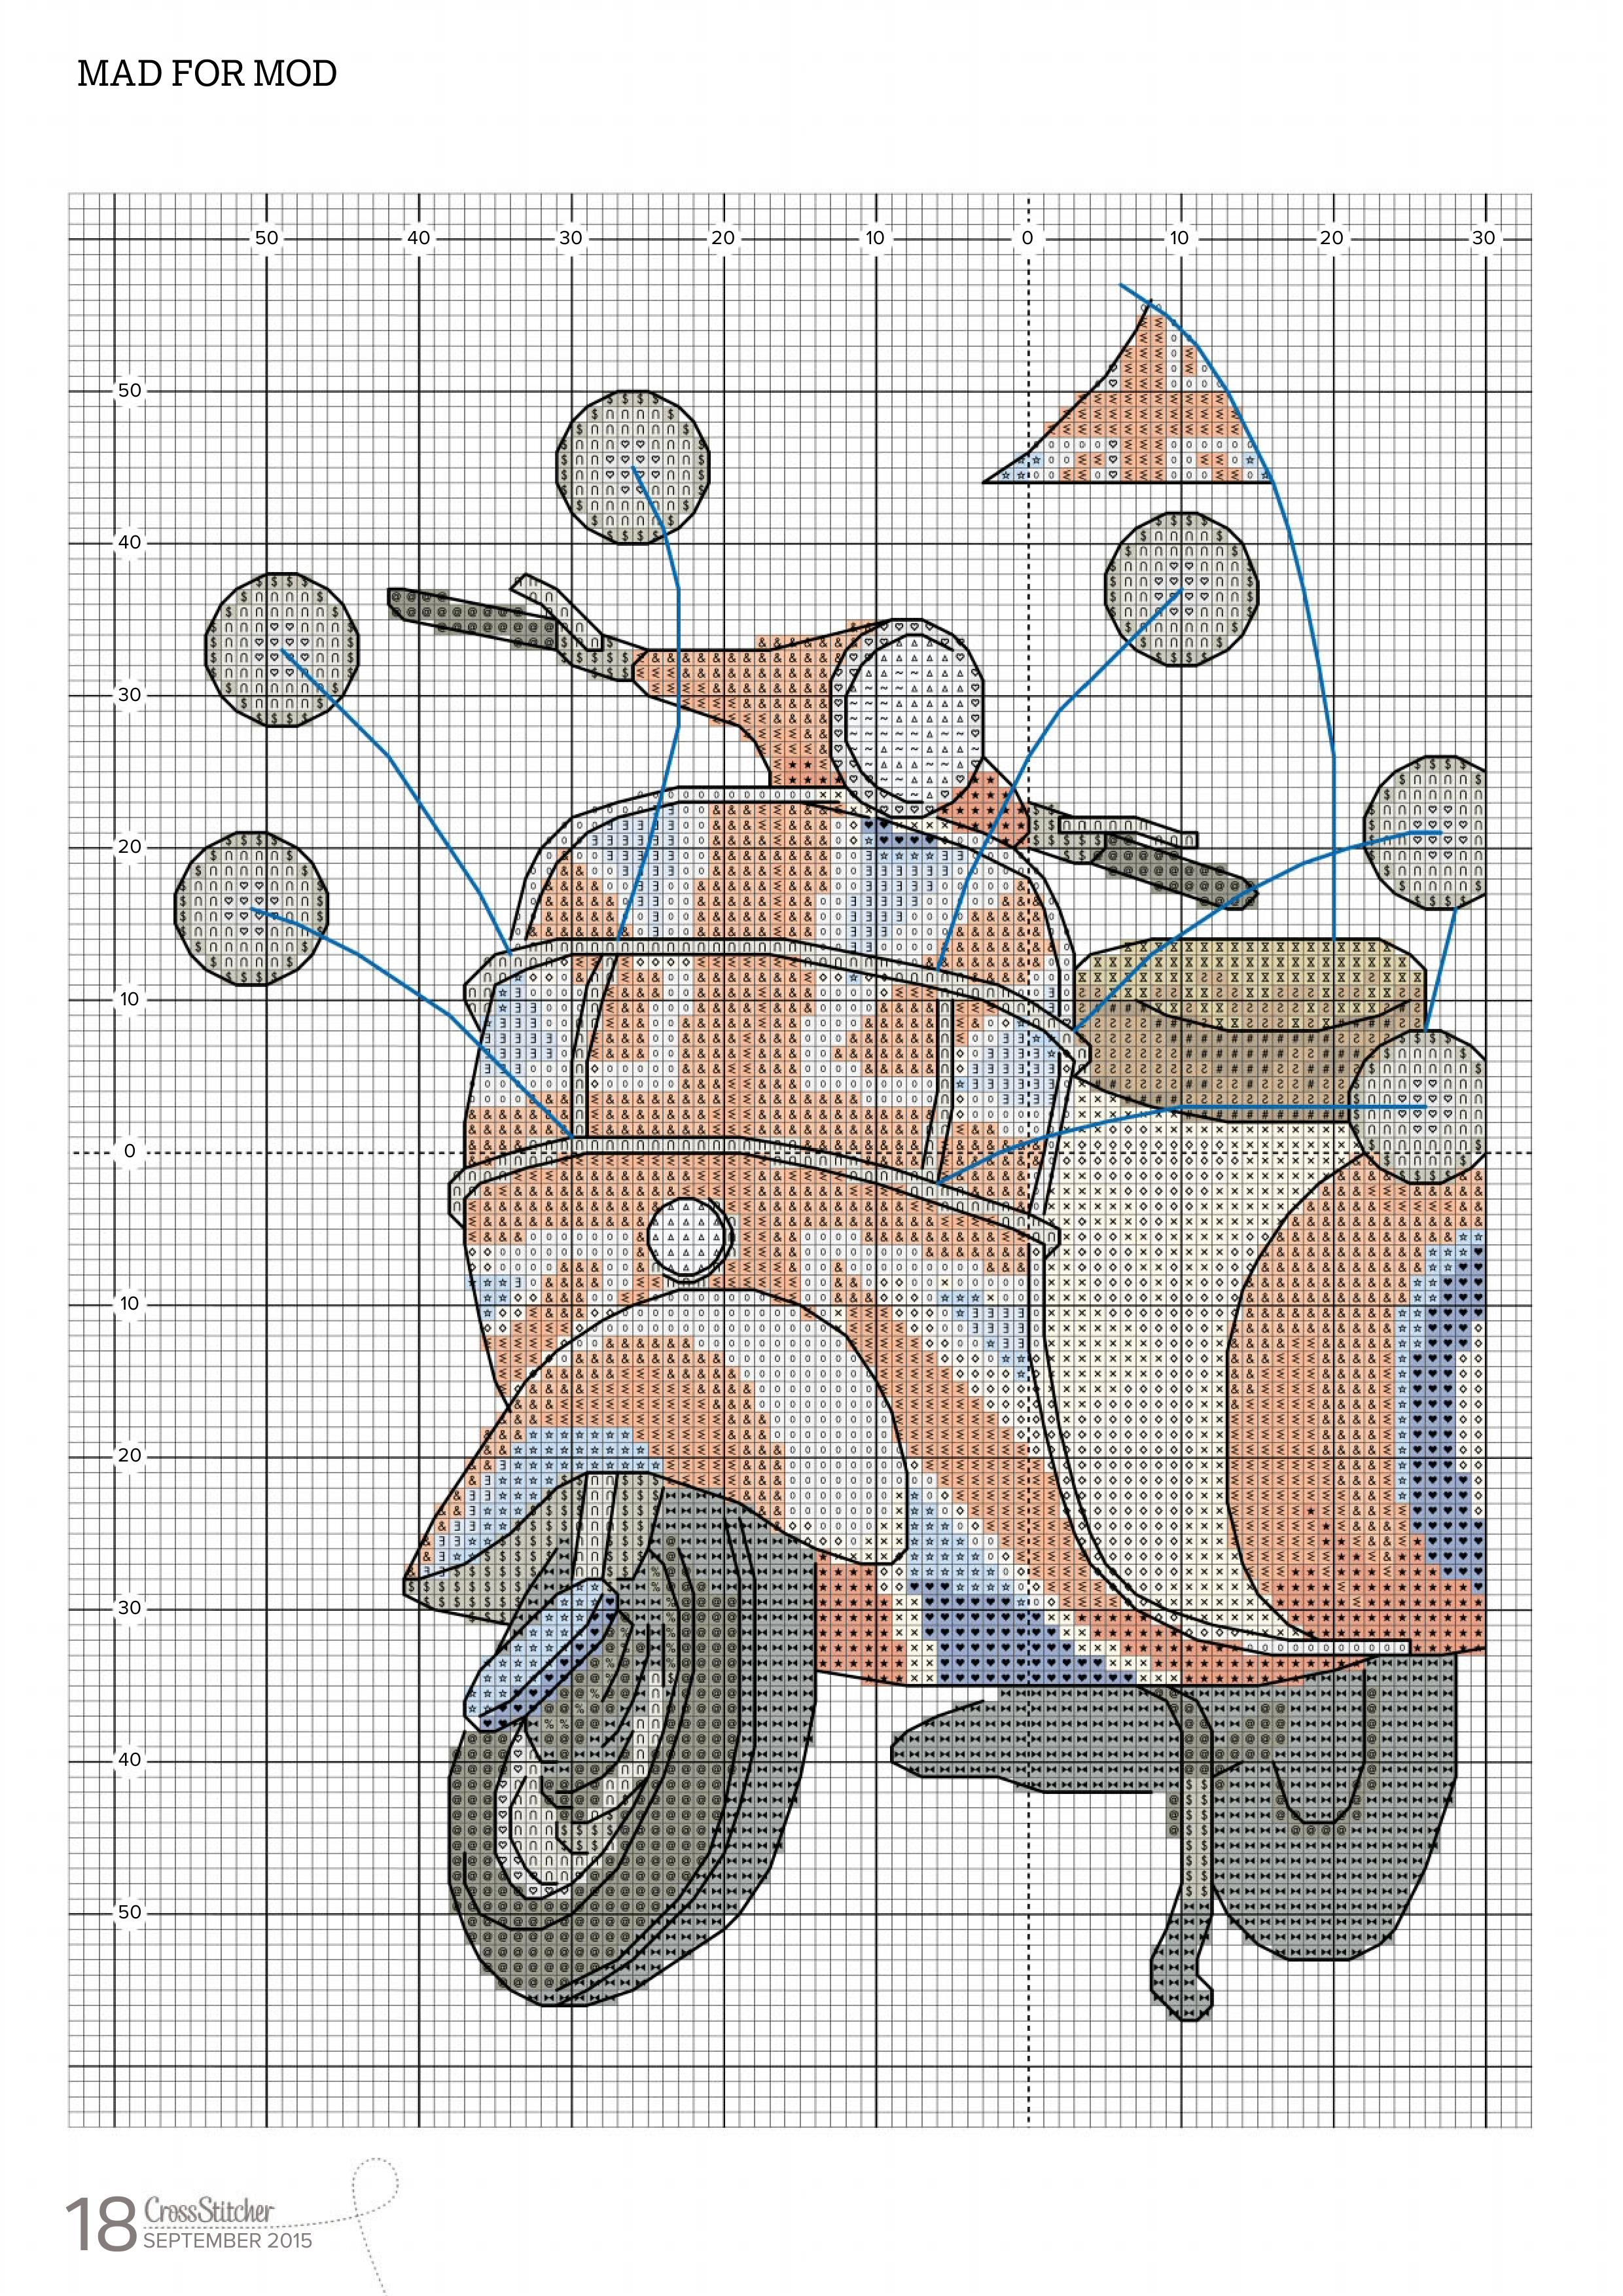 Mad For Mod From Cross Stitcher N°296 September 2015 2 of 5 | Coussin, Point de croix, Broderie